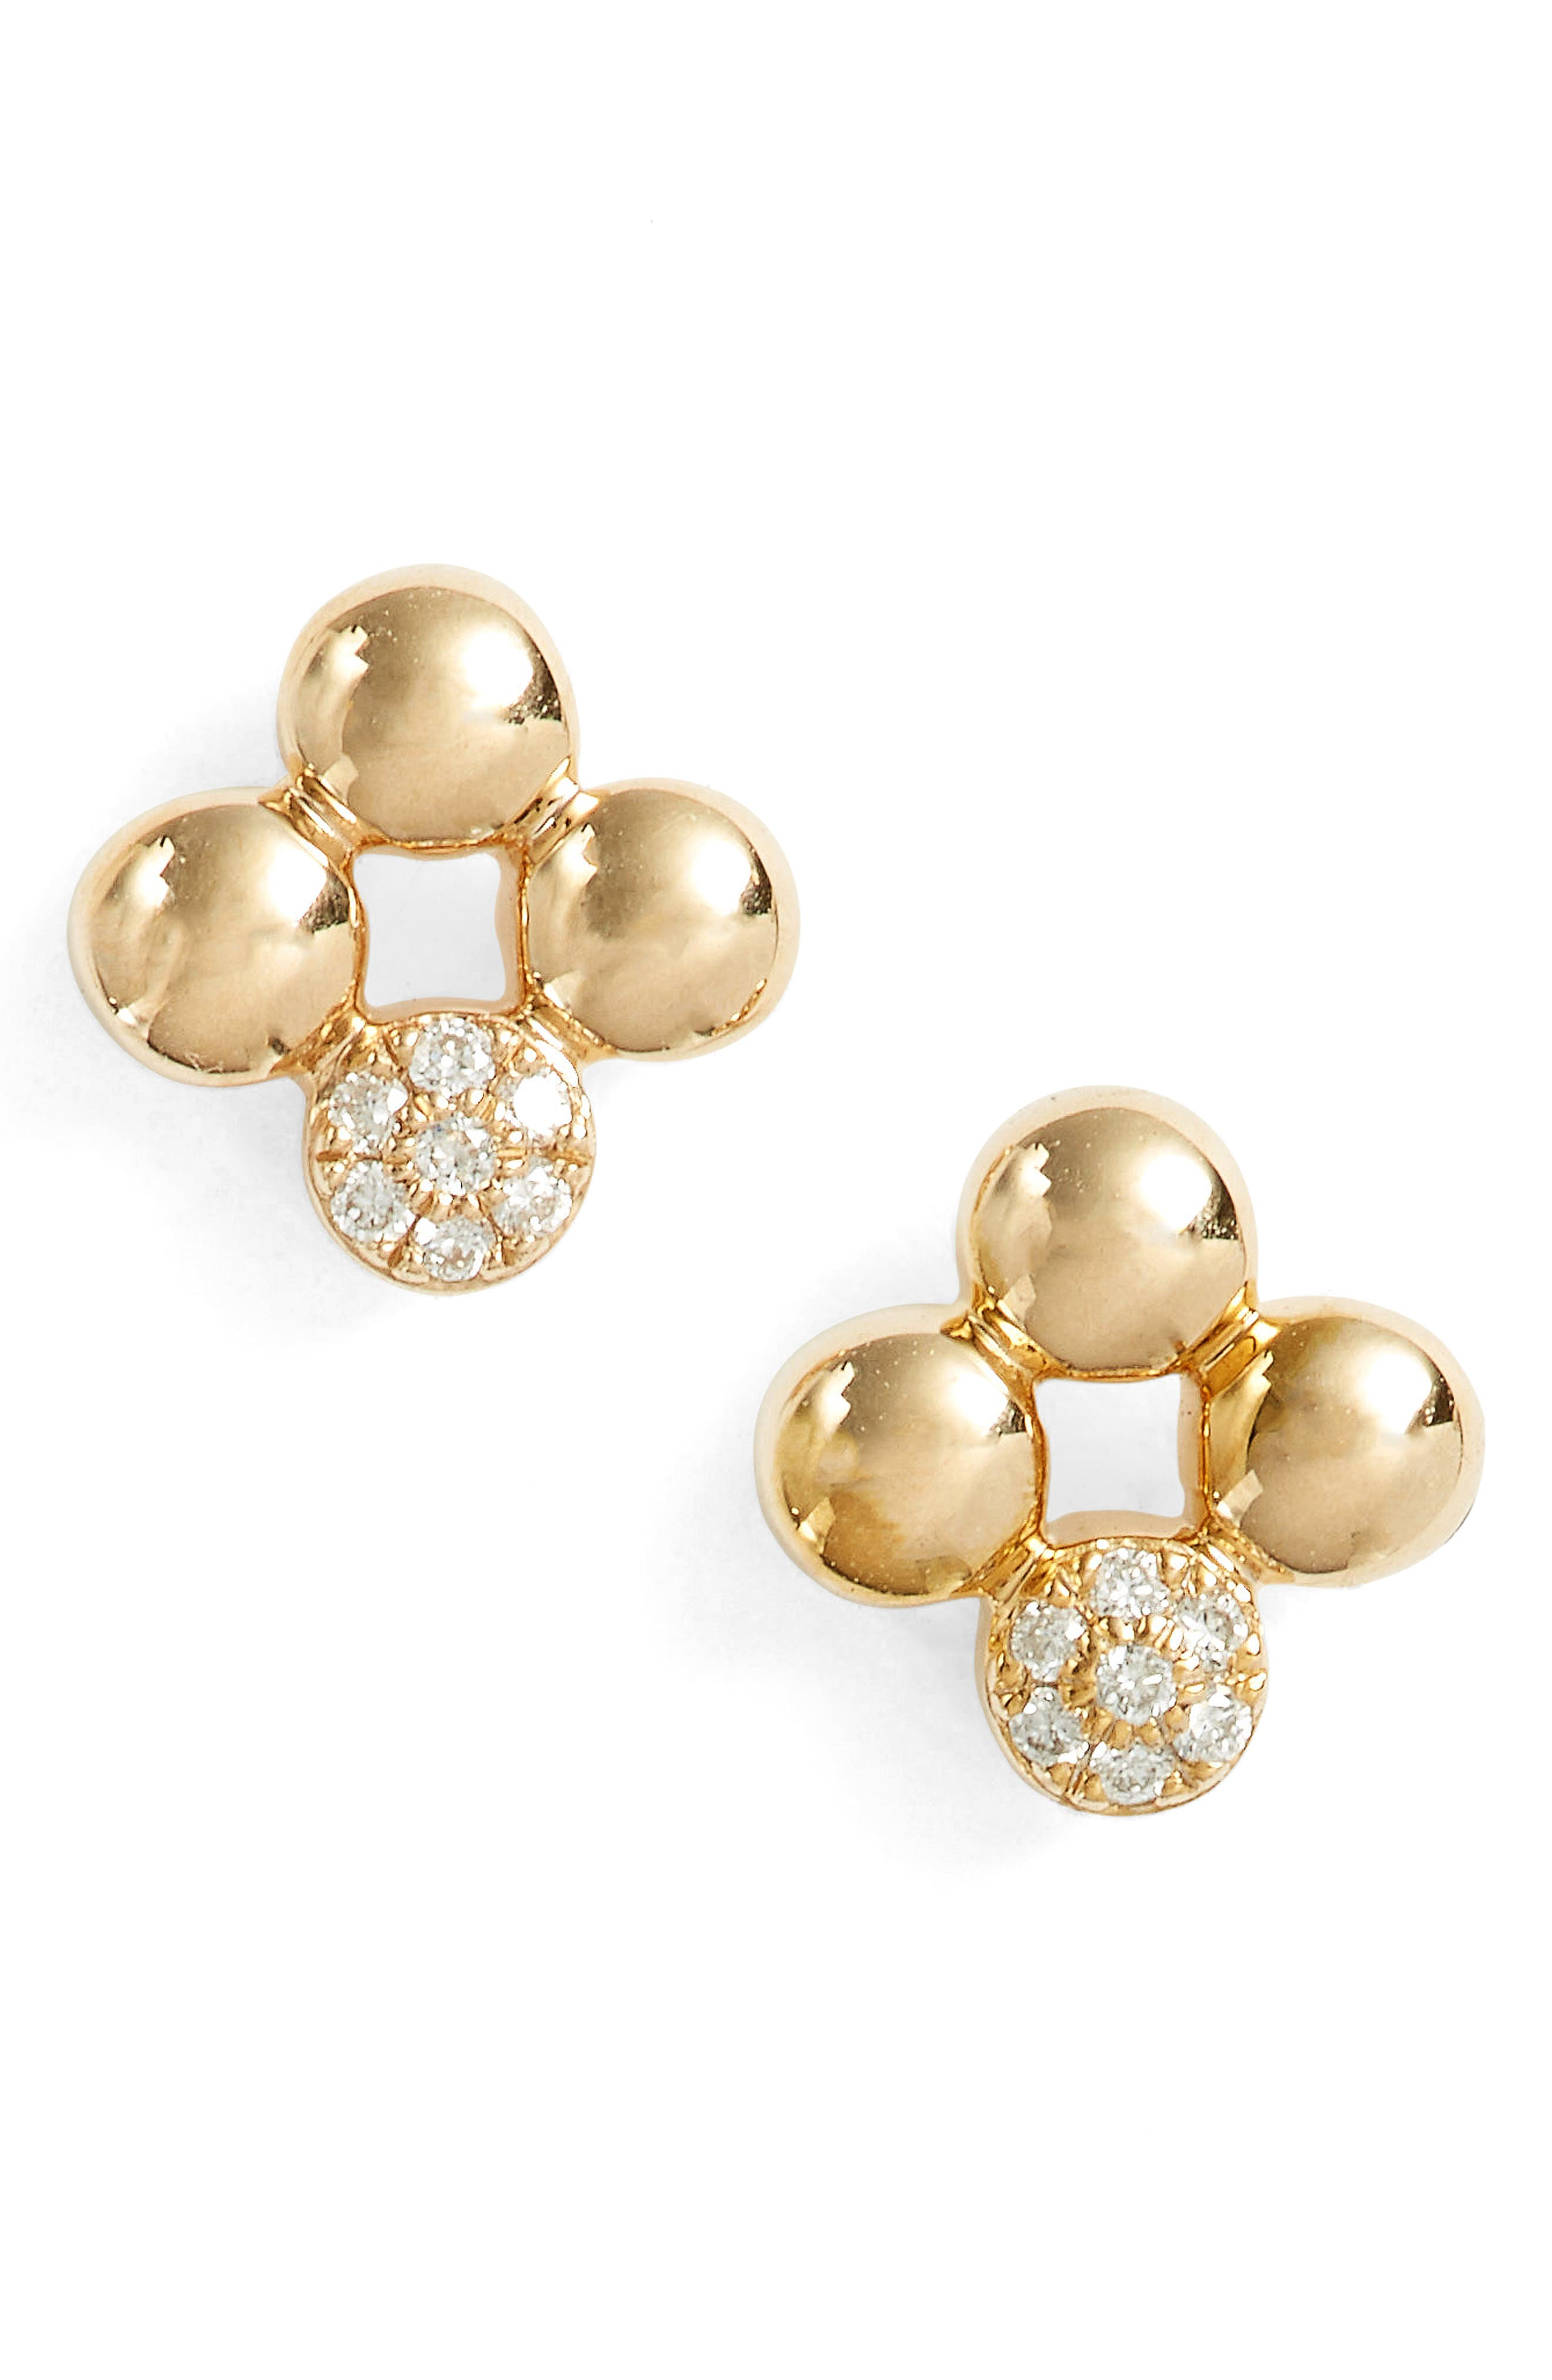 Poppy Rae Clover Diamond Stud Earrings,                         Main,                         color, Yellow Gold